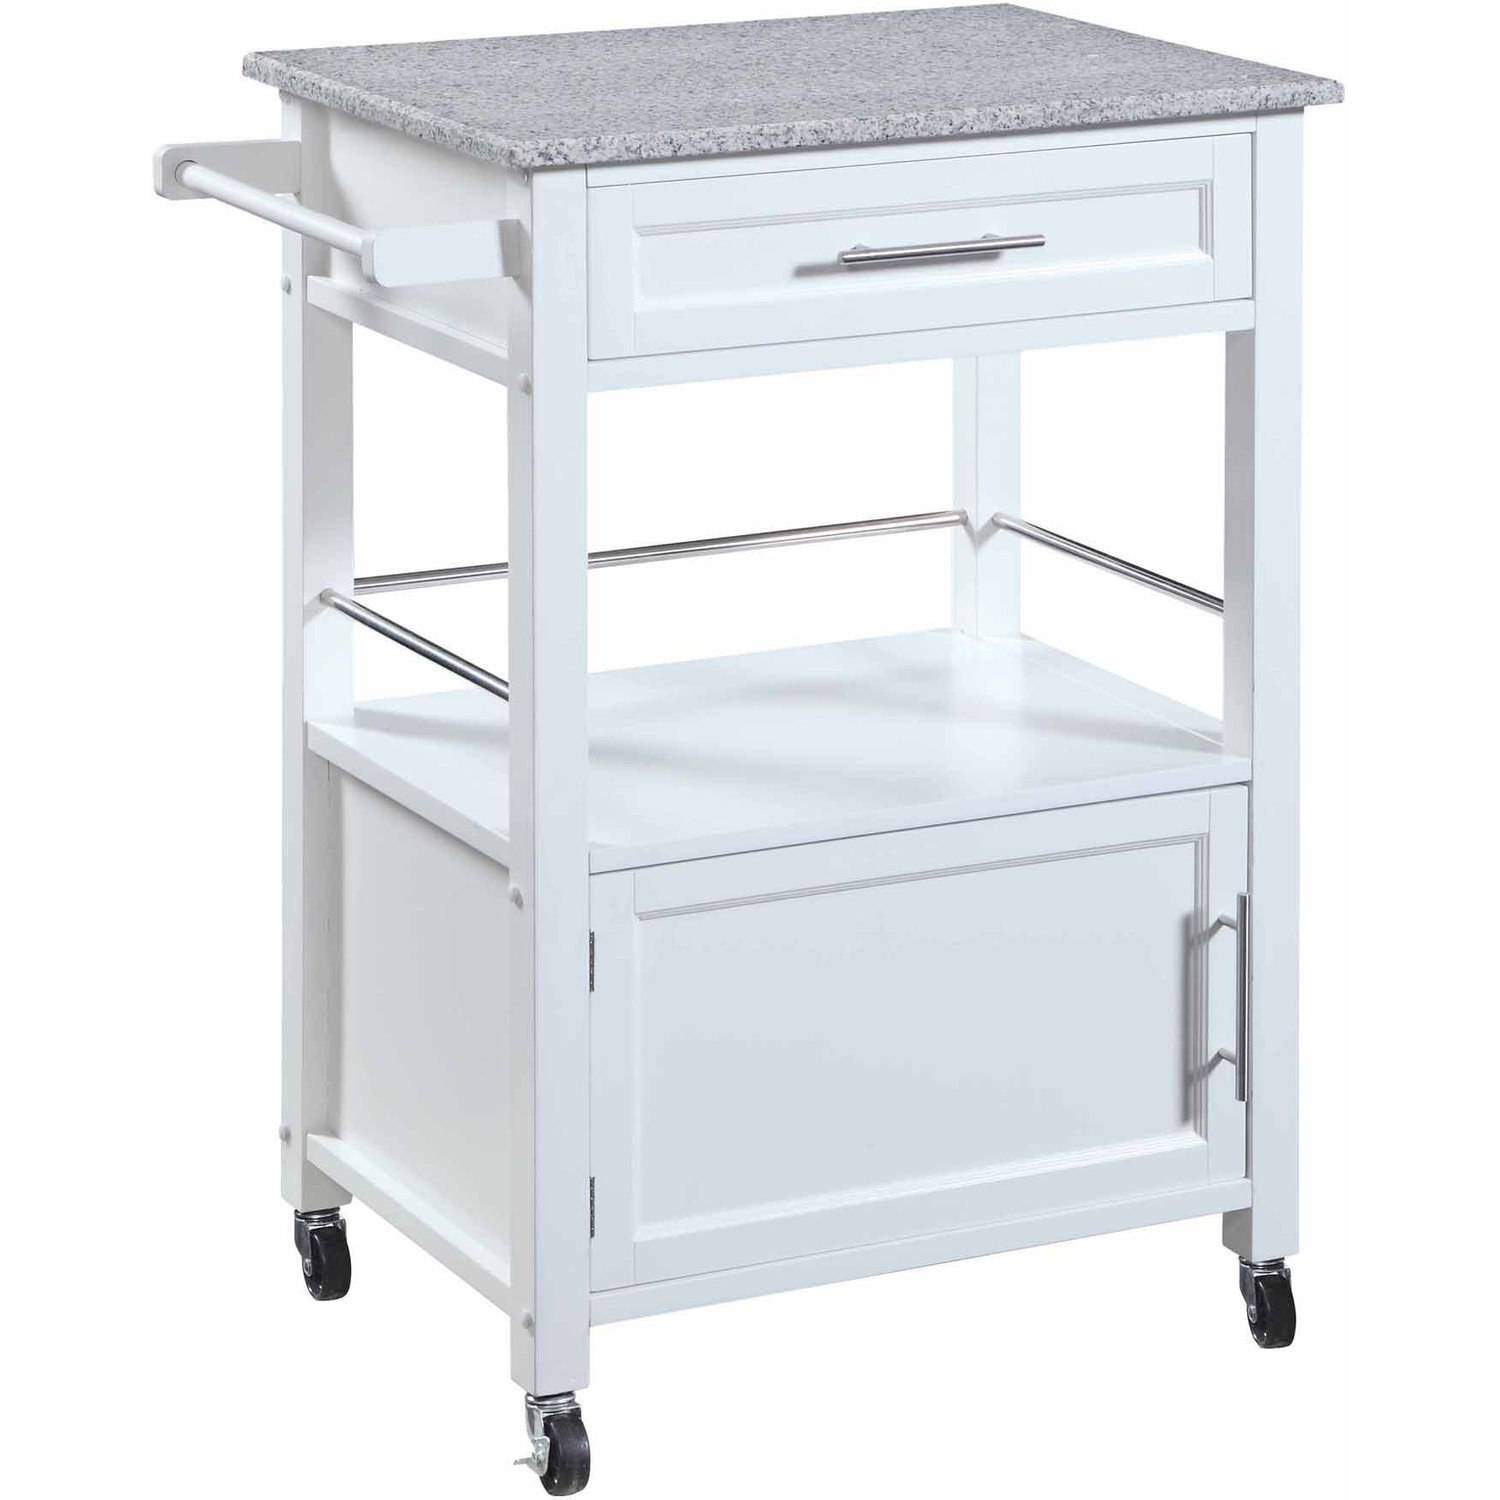 Mitchell Kitchen Cart with Granite Top, White Finish by Linon Home Decor Products Inc